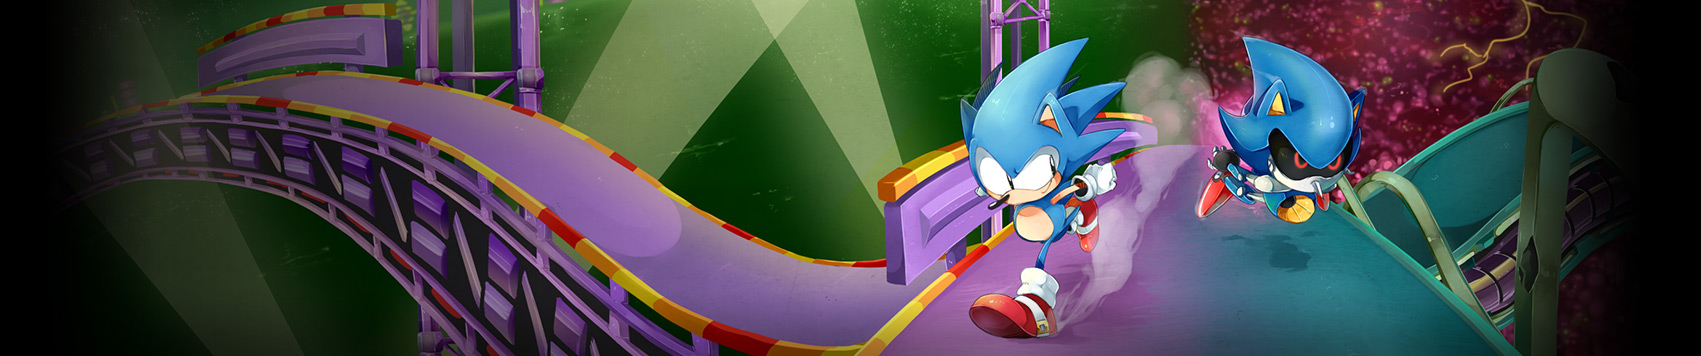 Sonic CD: Temporal Duality remix album now out - News